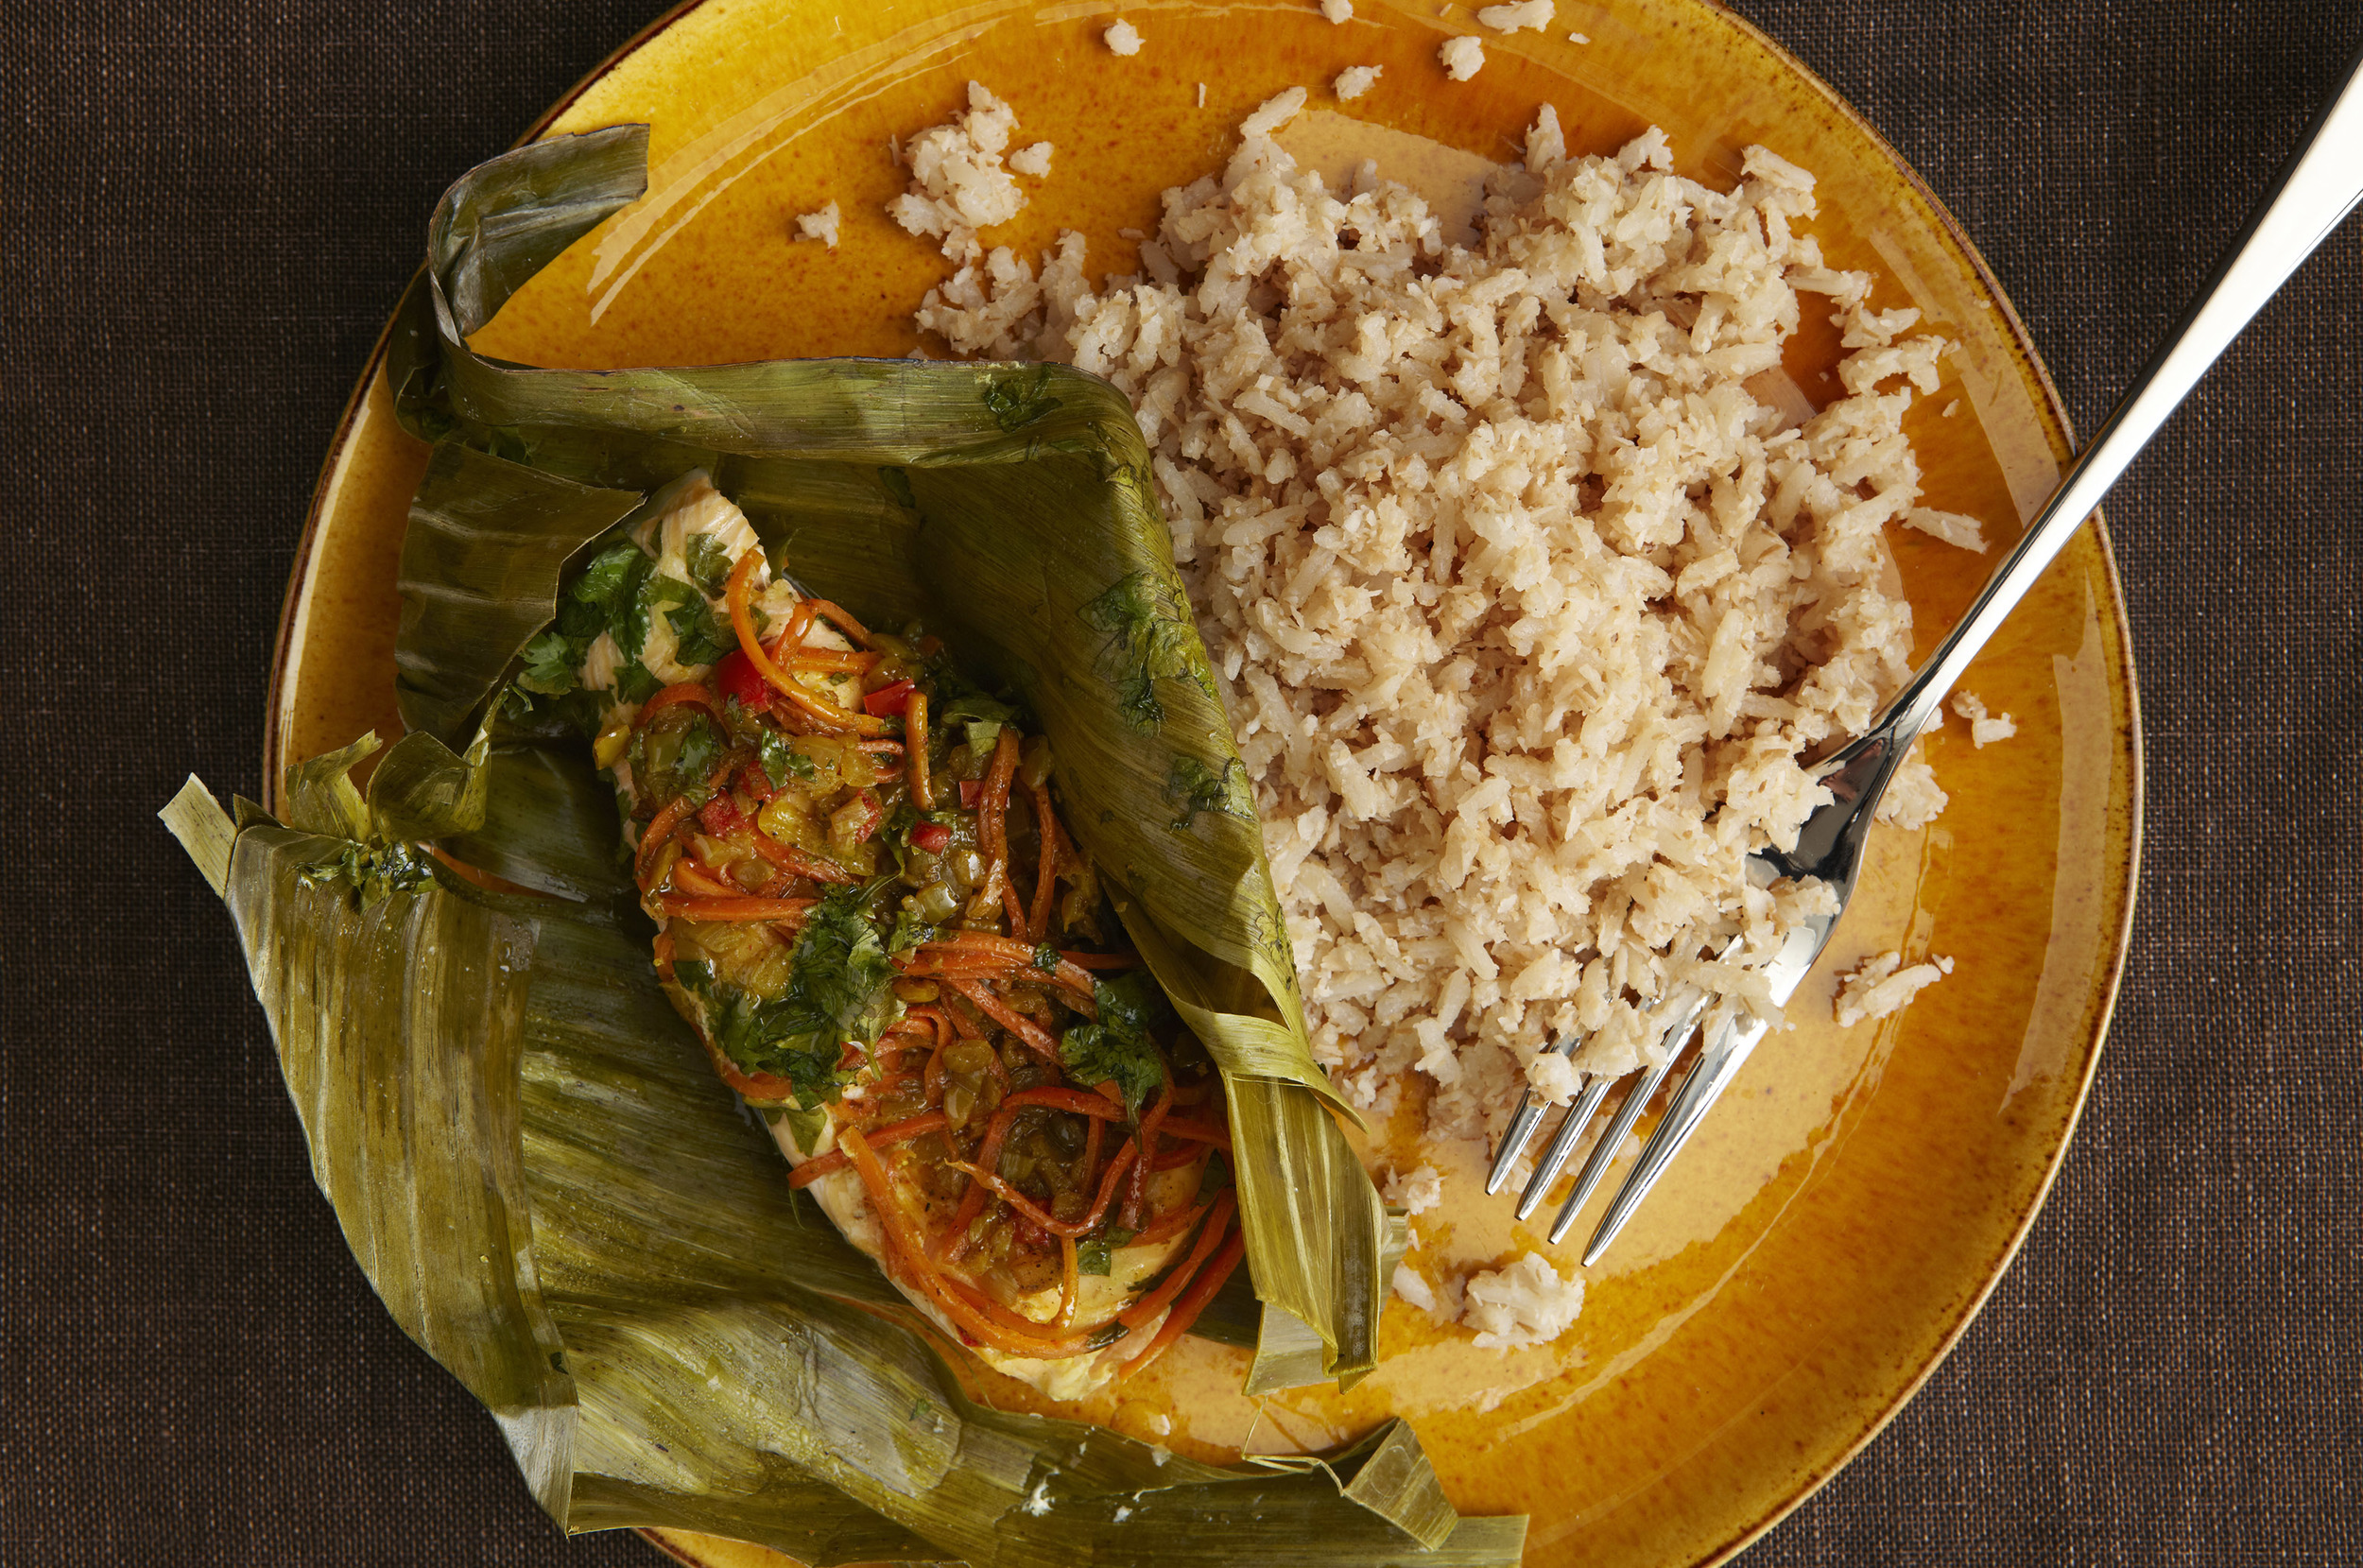 Arctic Char Steamed in Banana Leaves with San Andres Arroz de Coco